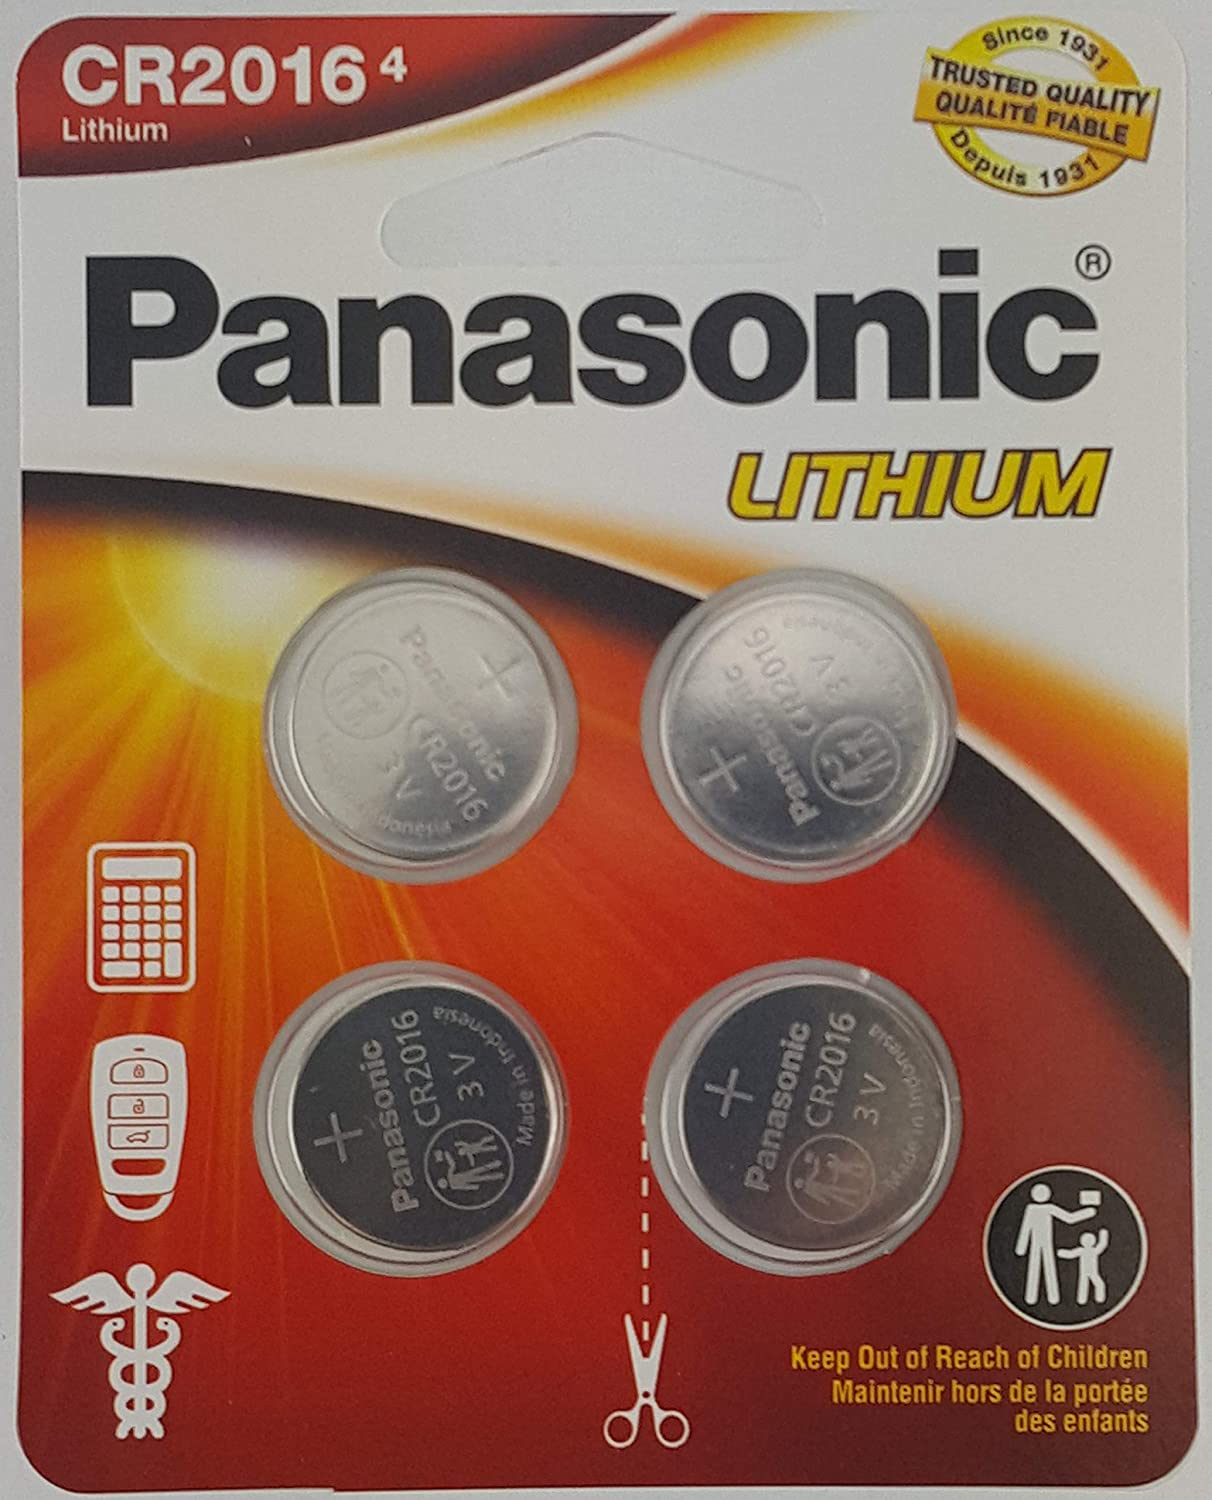 Panasonic CR2016 3.0 Volt Long Lasting Lithium Coin Cell Batteries in Child Resistant 4 Pack Standards Based Packaging